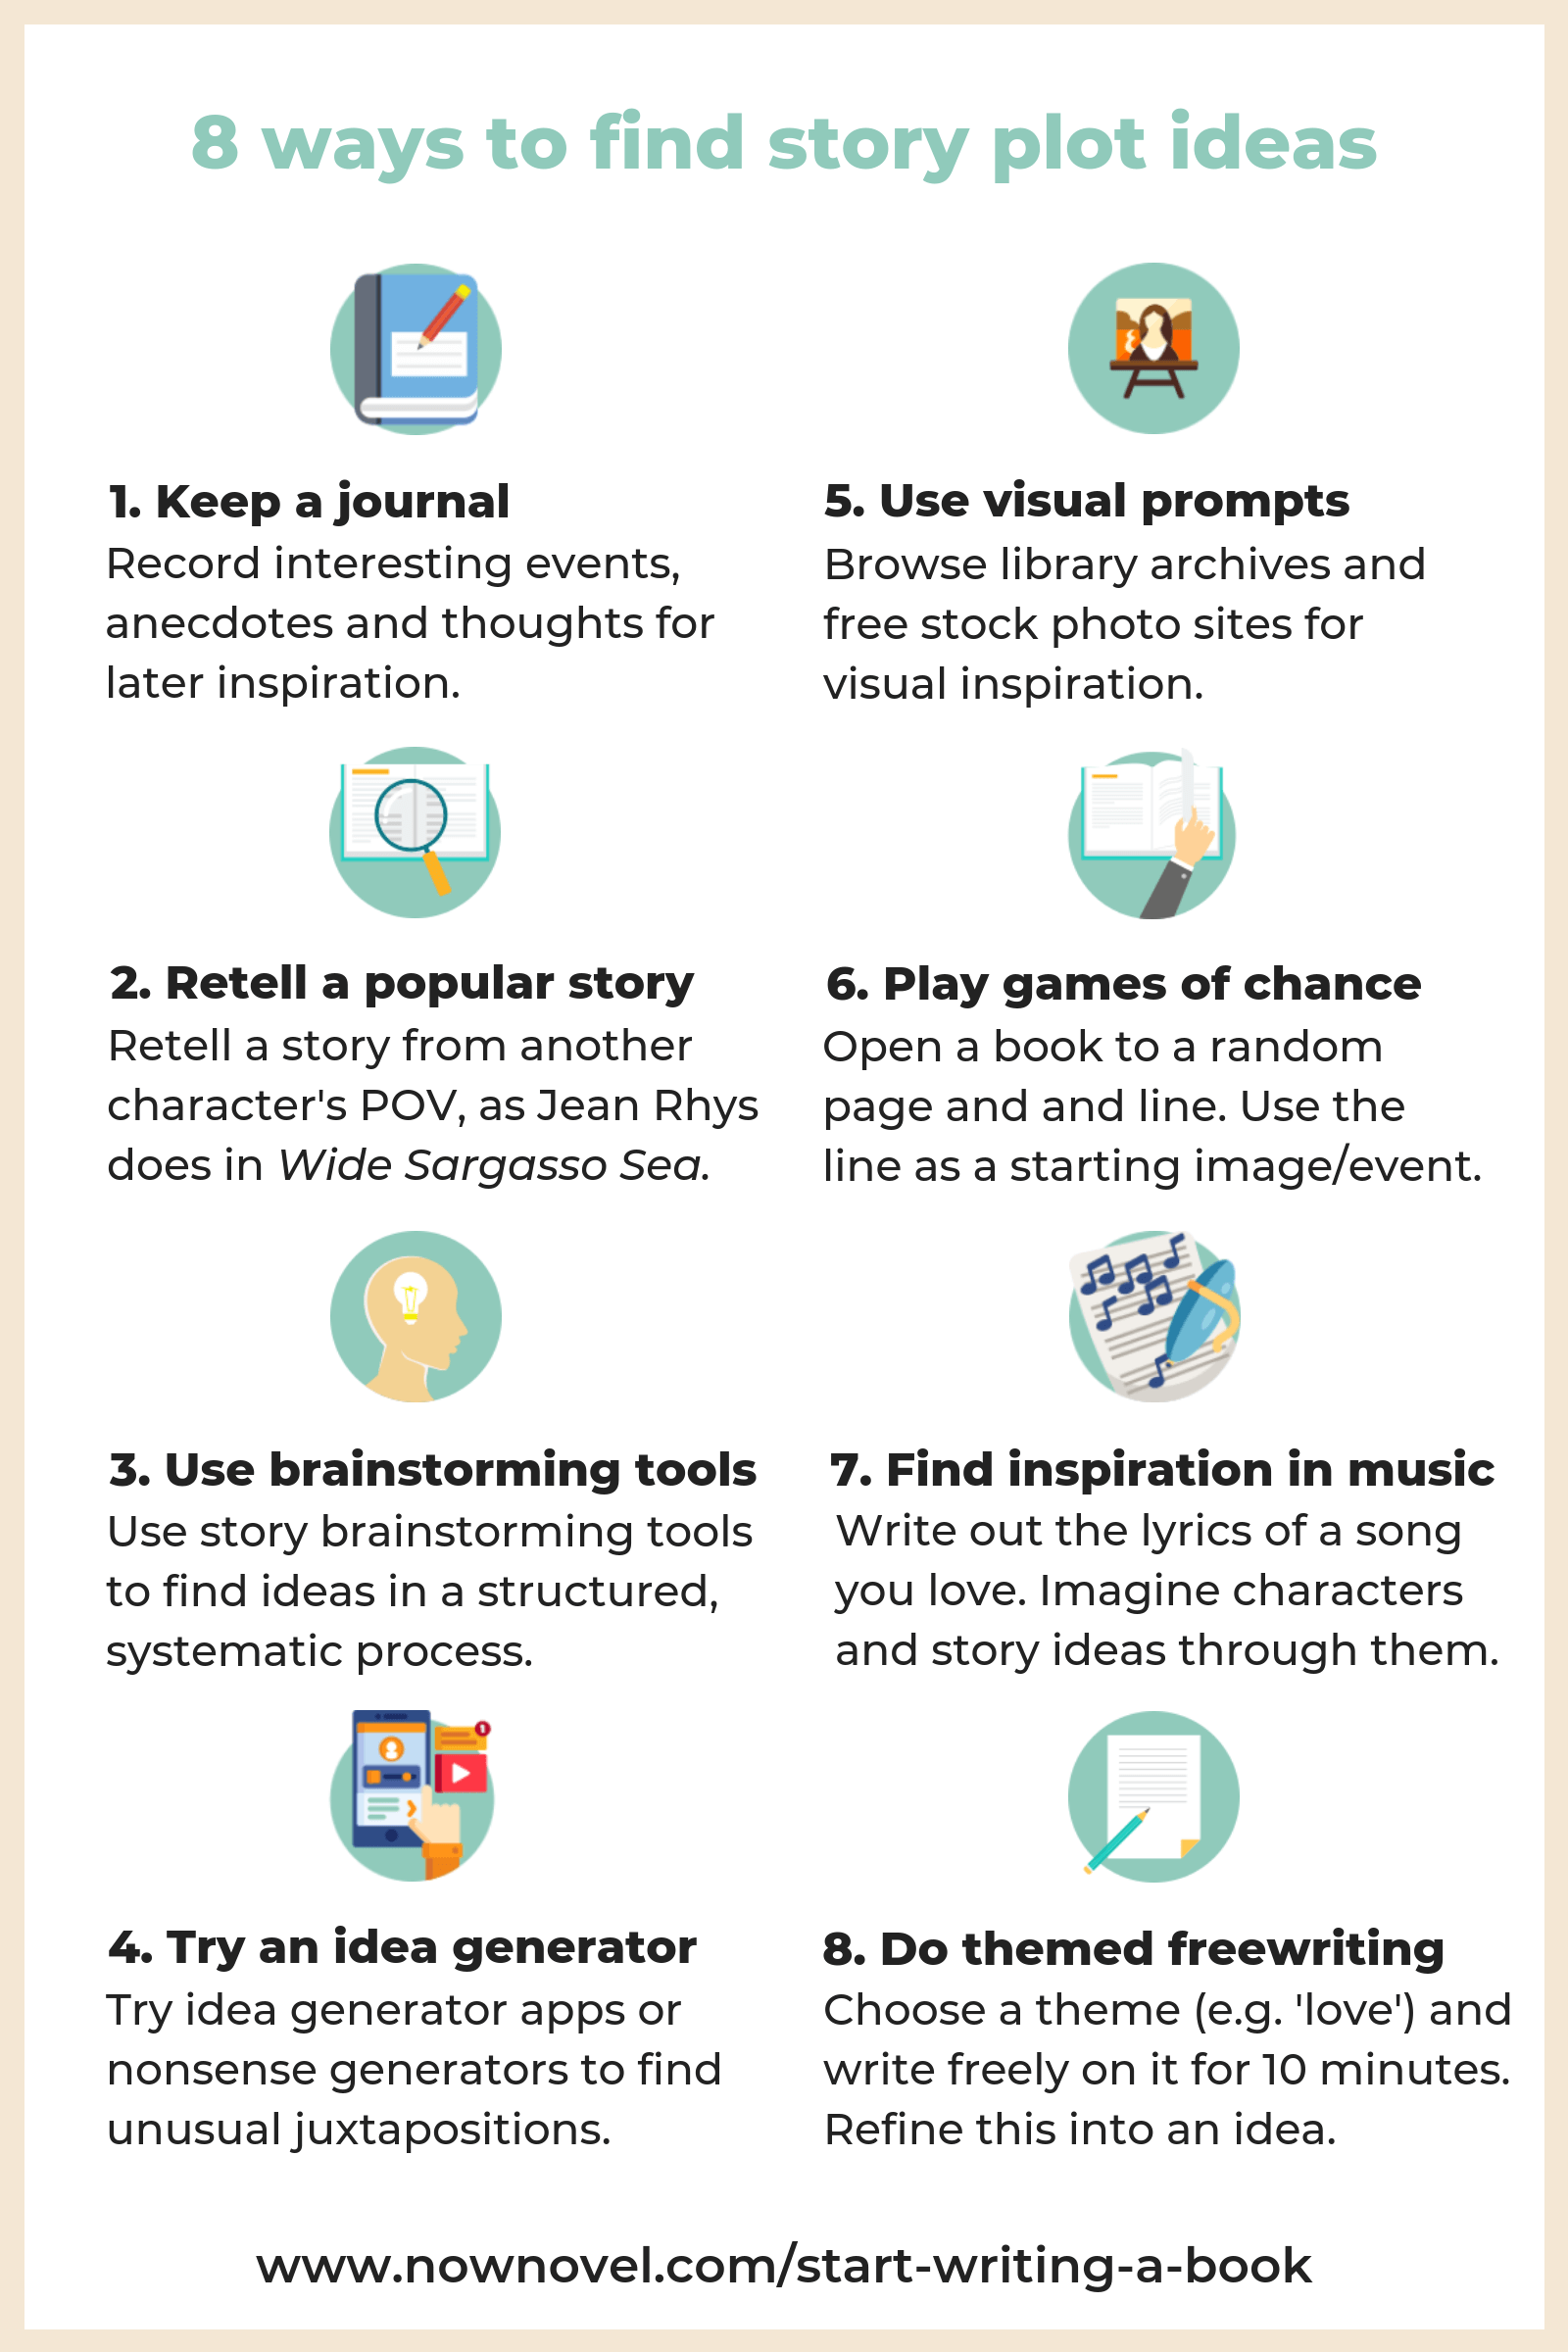 Story Plot Ideas 8 Fun Ways To Find Your Premise